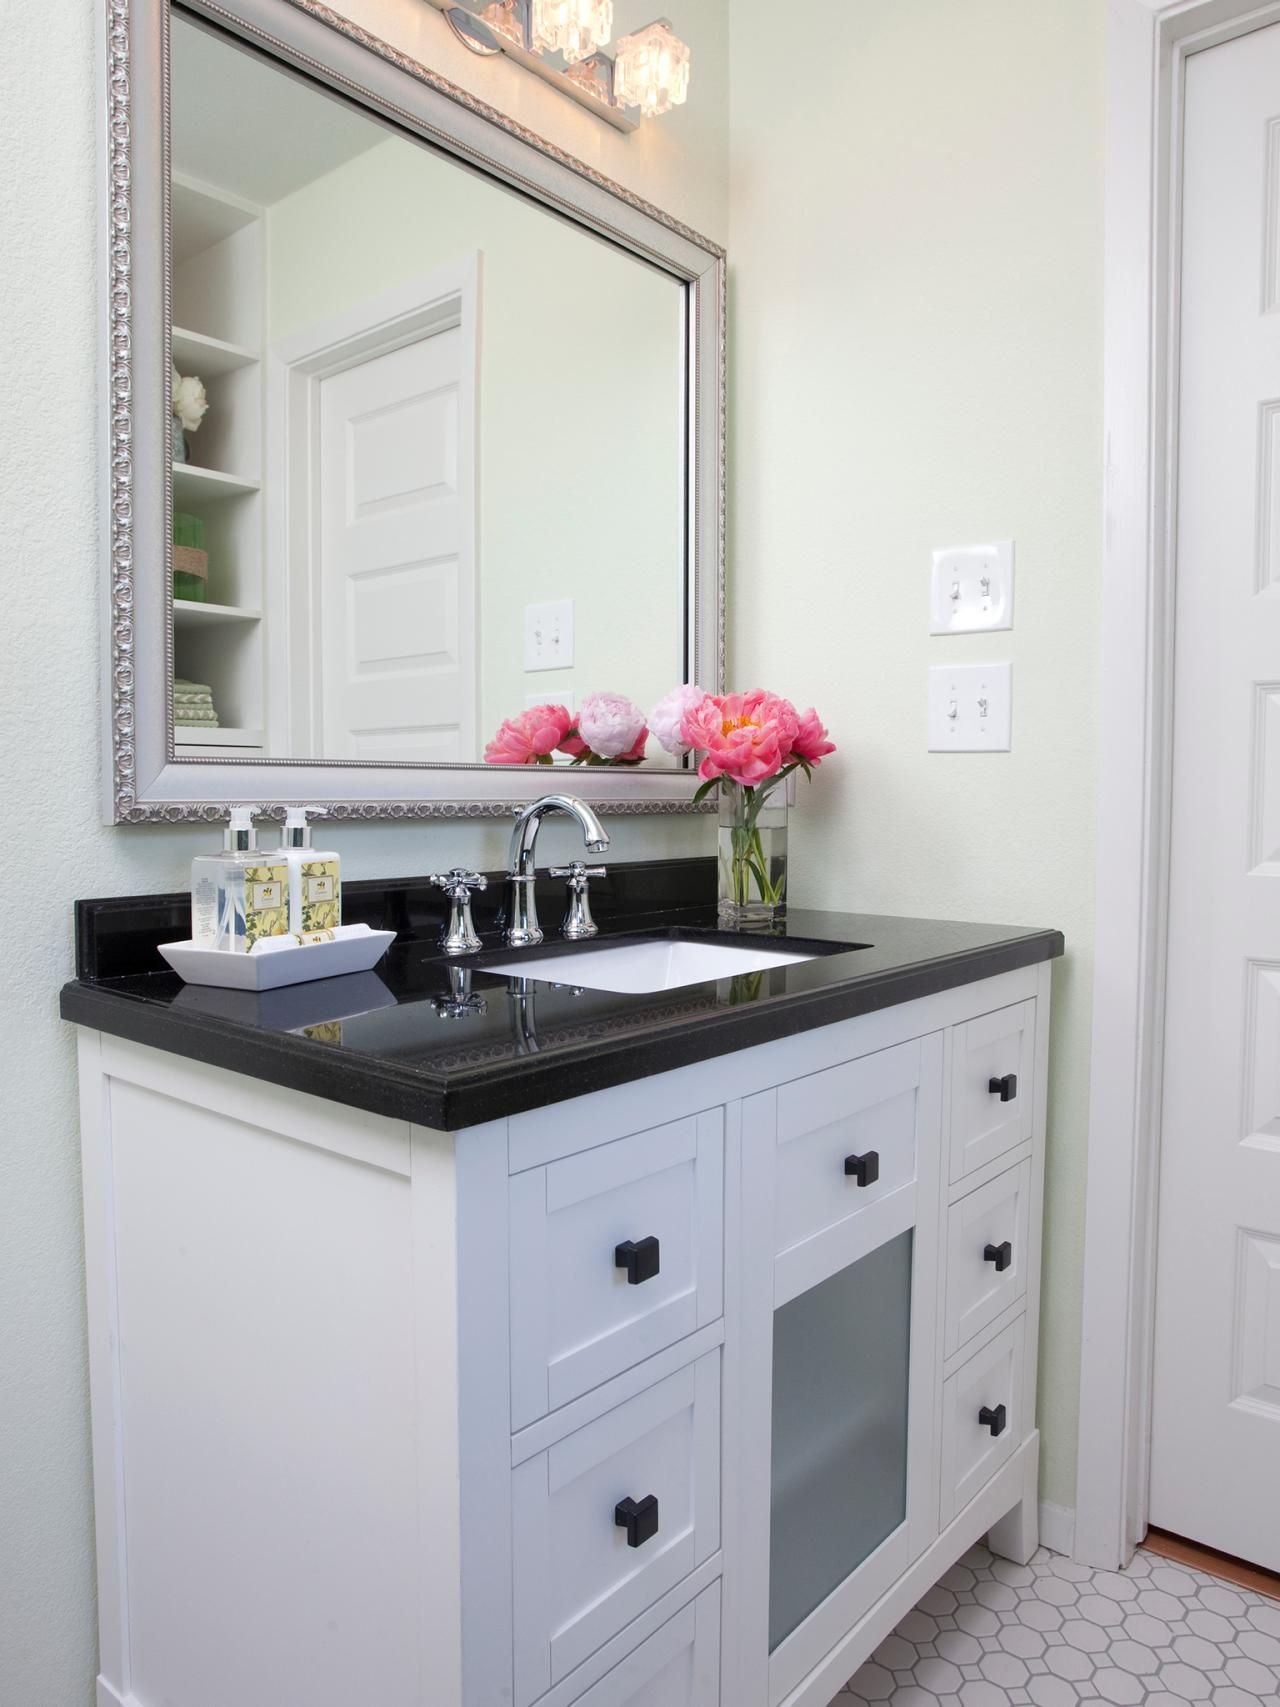 A Black And White Vanity With Polished Countertop Has Plenty Of Counter E An Under Mounted Sink For Easy Cleanup